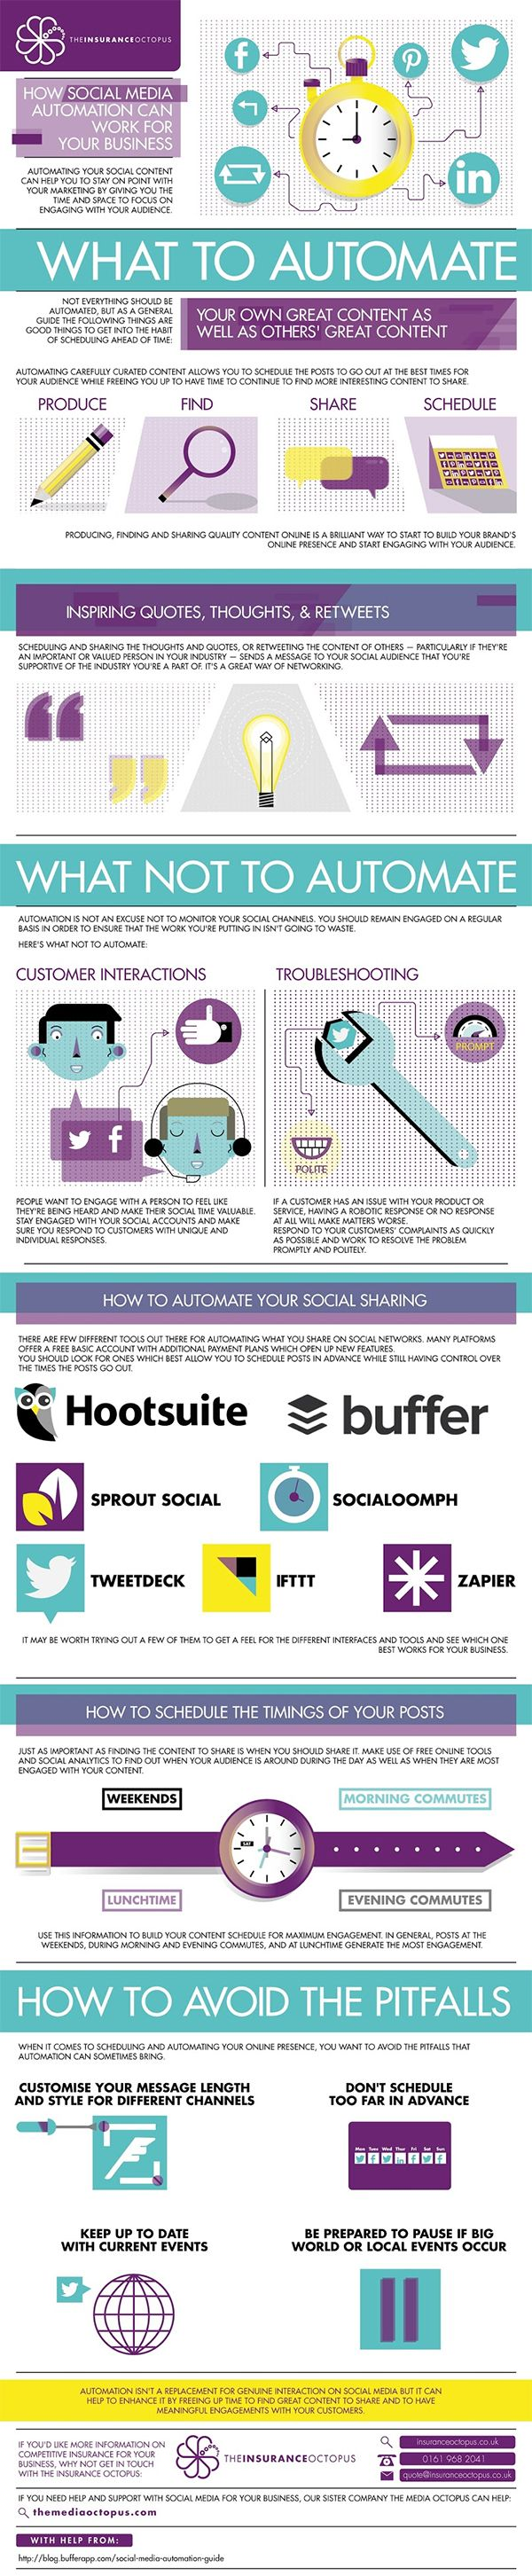 The Dos and Don'ts of Social Media Automation and the Best Tools to Use